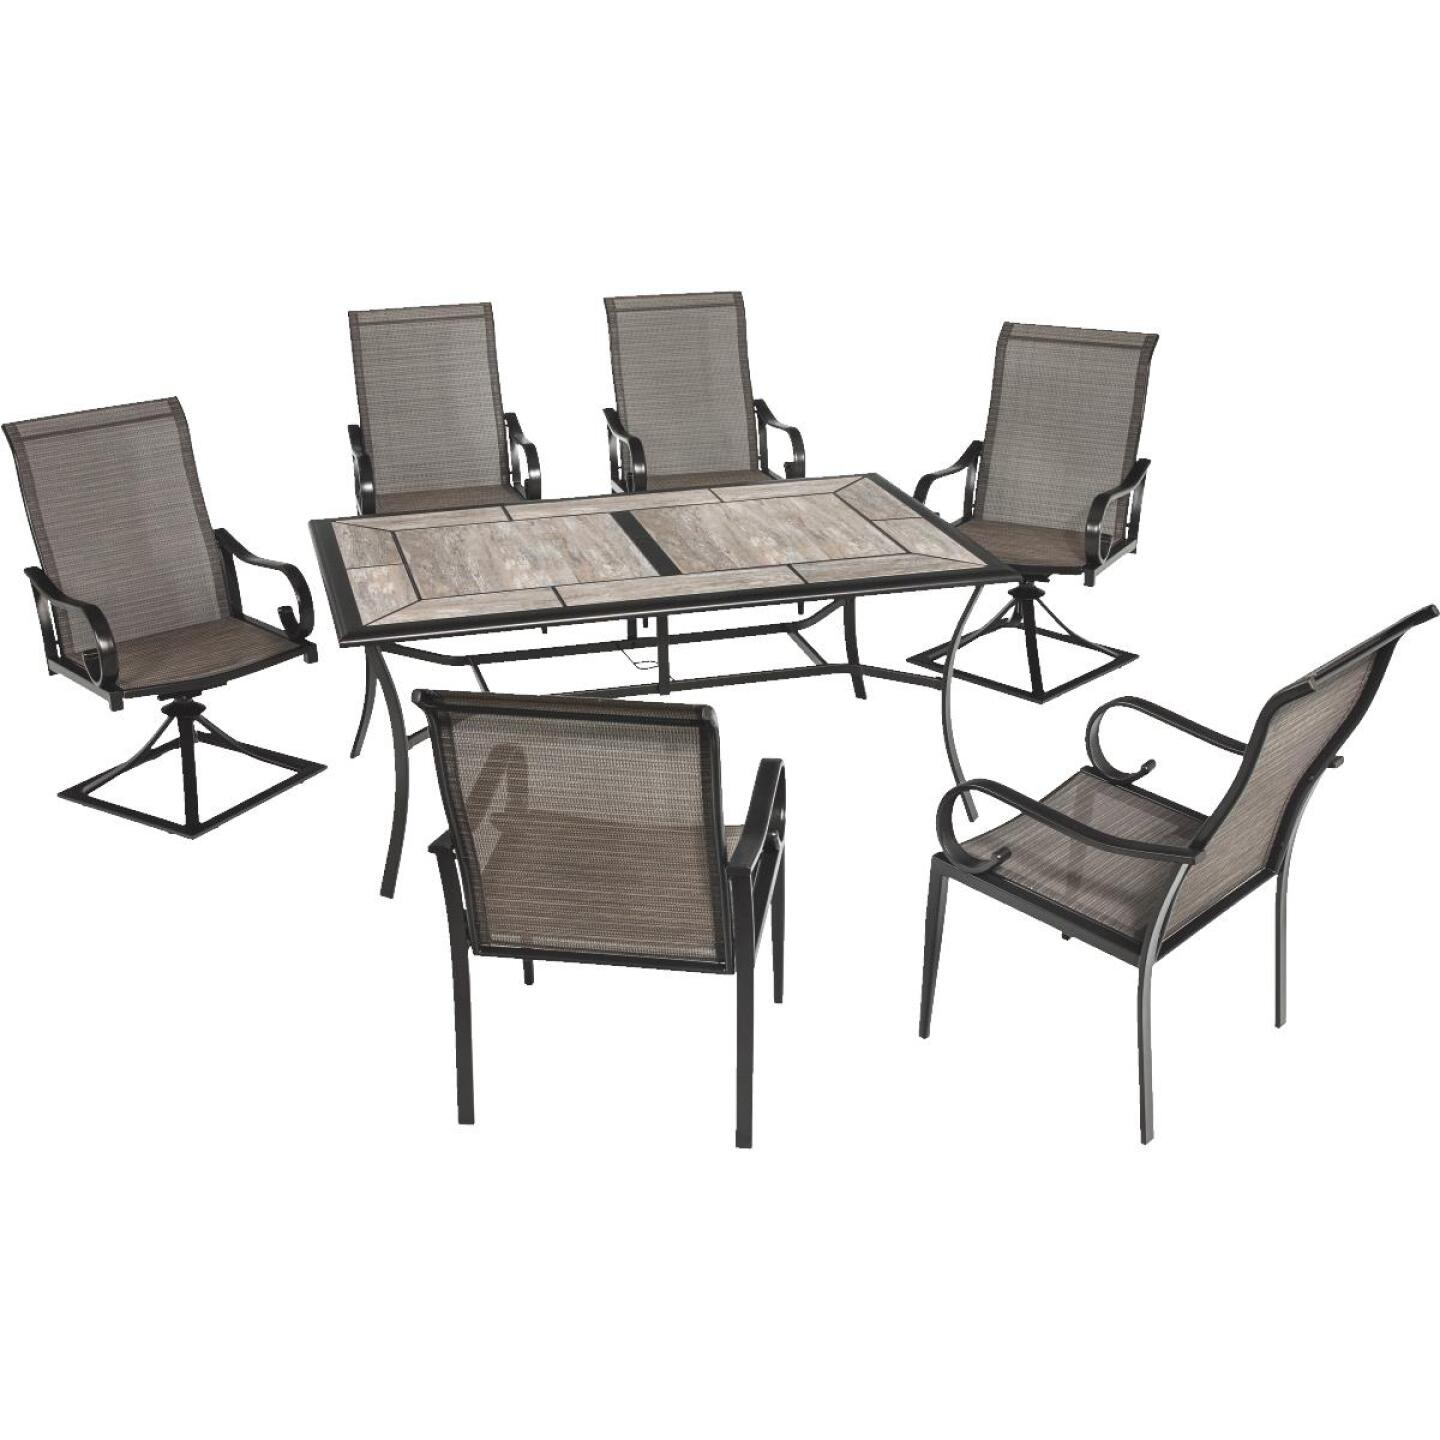 Outdoor Expressions Berkshire 7-Piece Dining Set Image 259